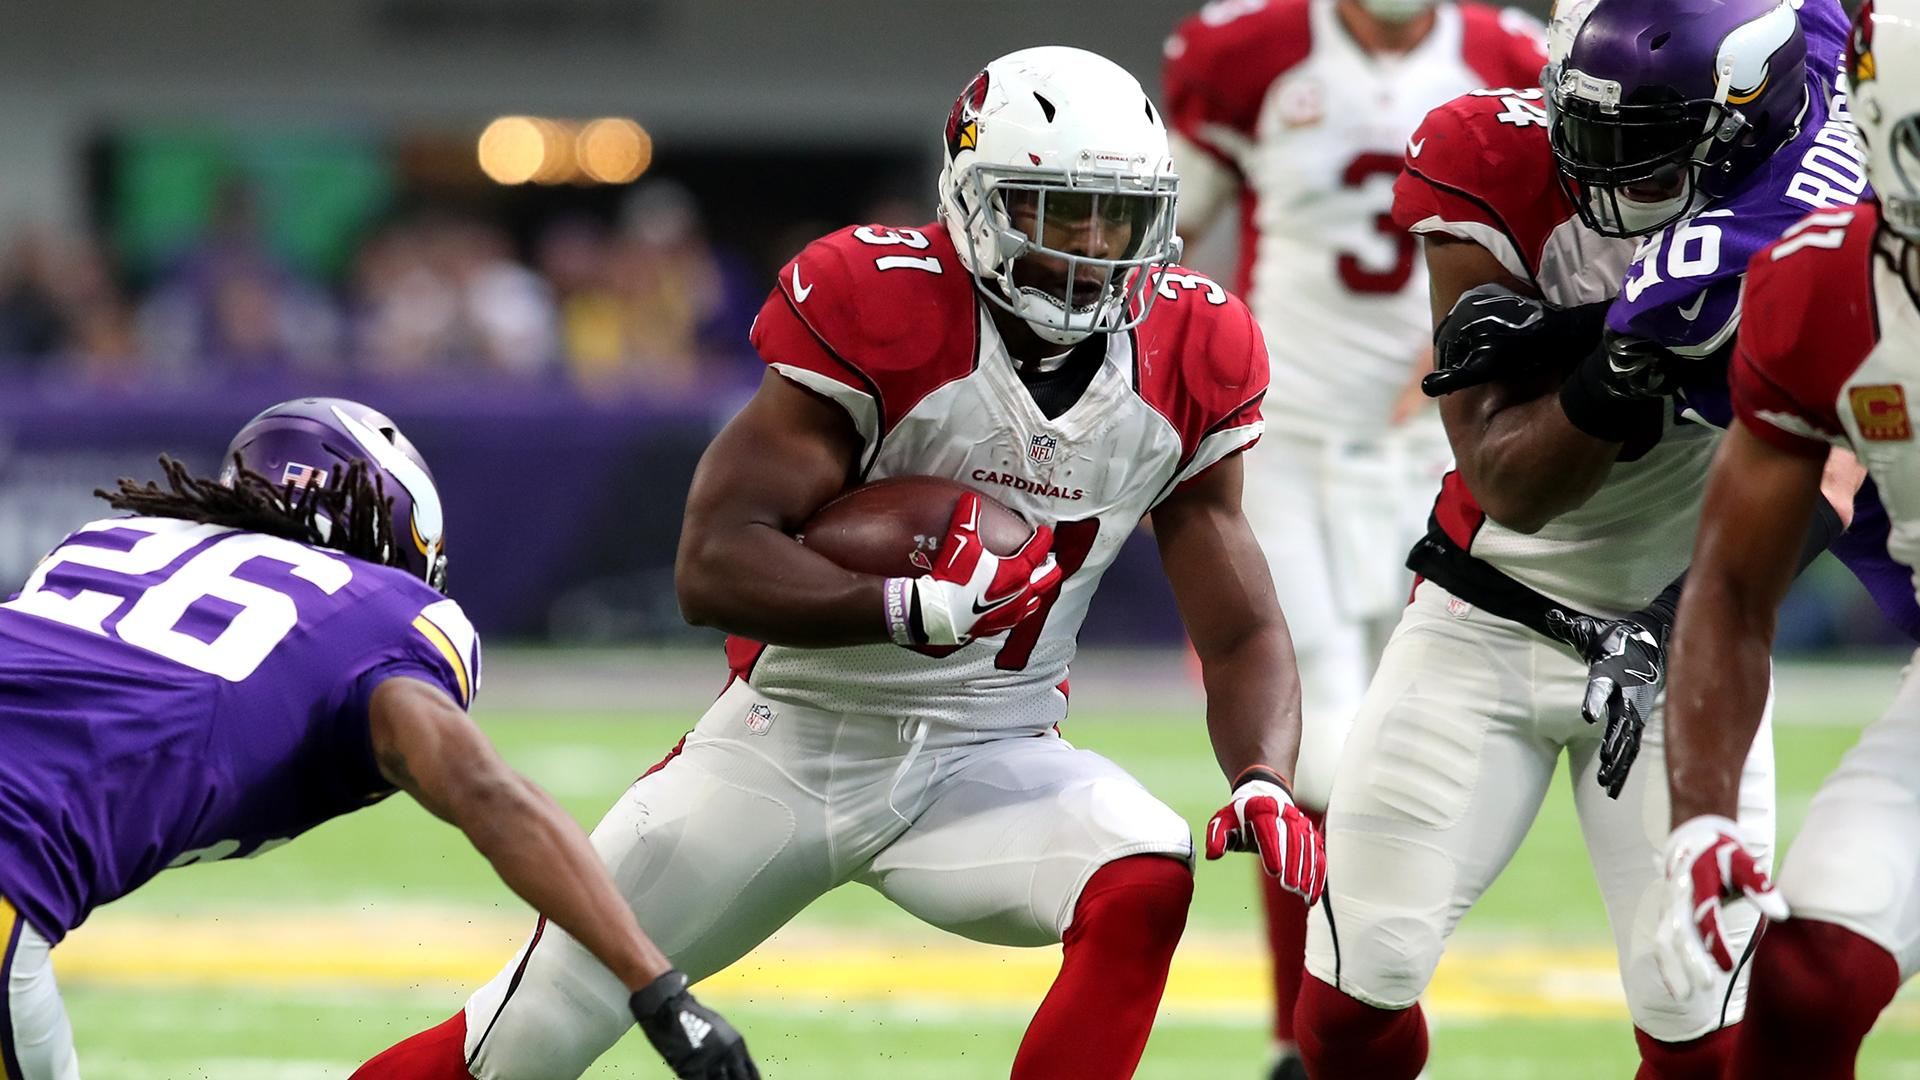 yahoo fantasy football projections For updated rankings, projections, player profiles, positional tiers, mock drafts, sleepers and busts, exclusive columns and plenty more, check out rotoworld's fantasy football.